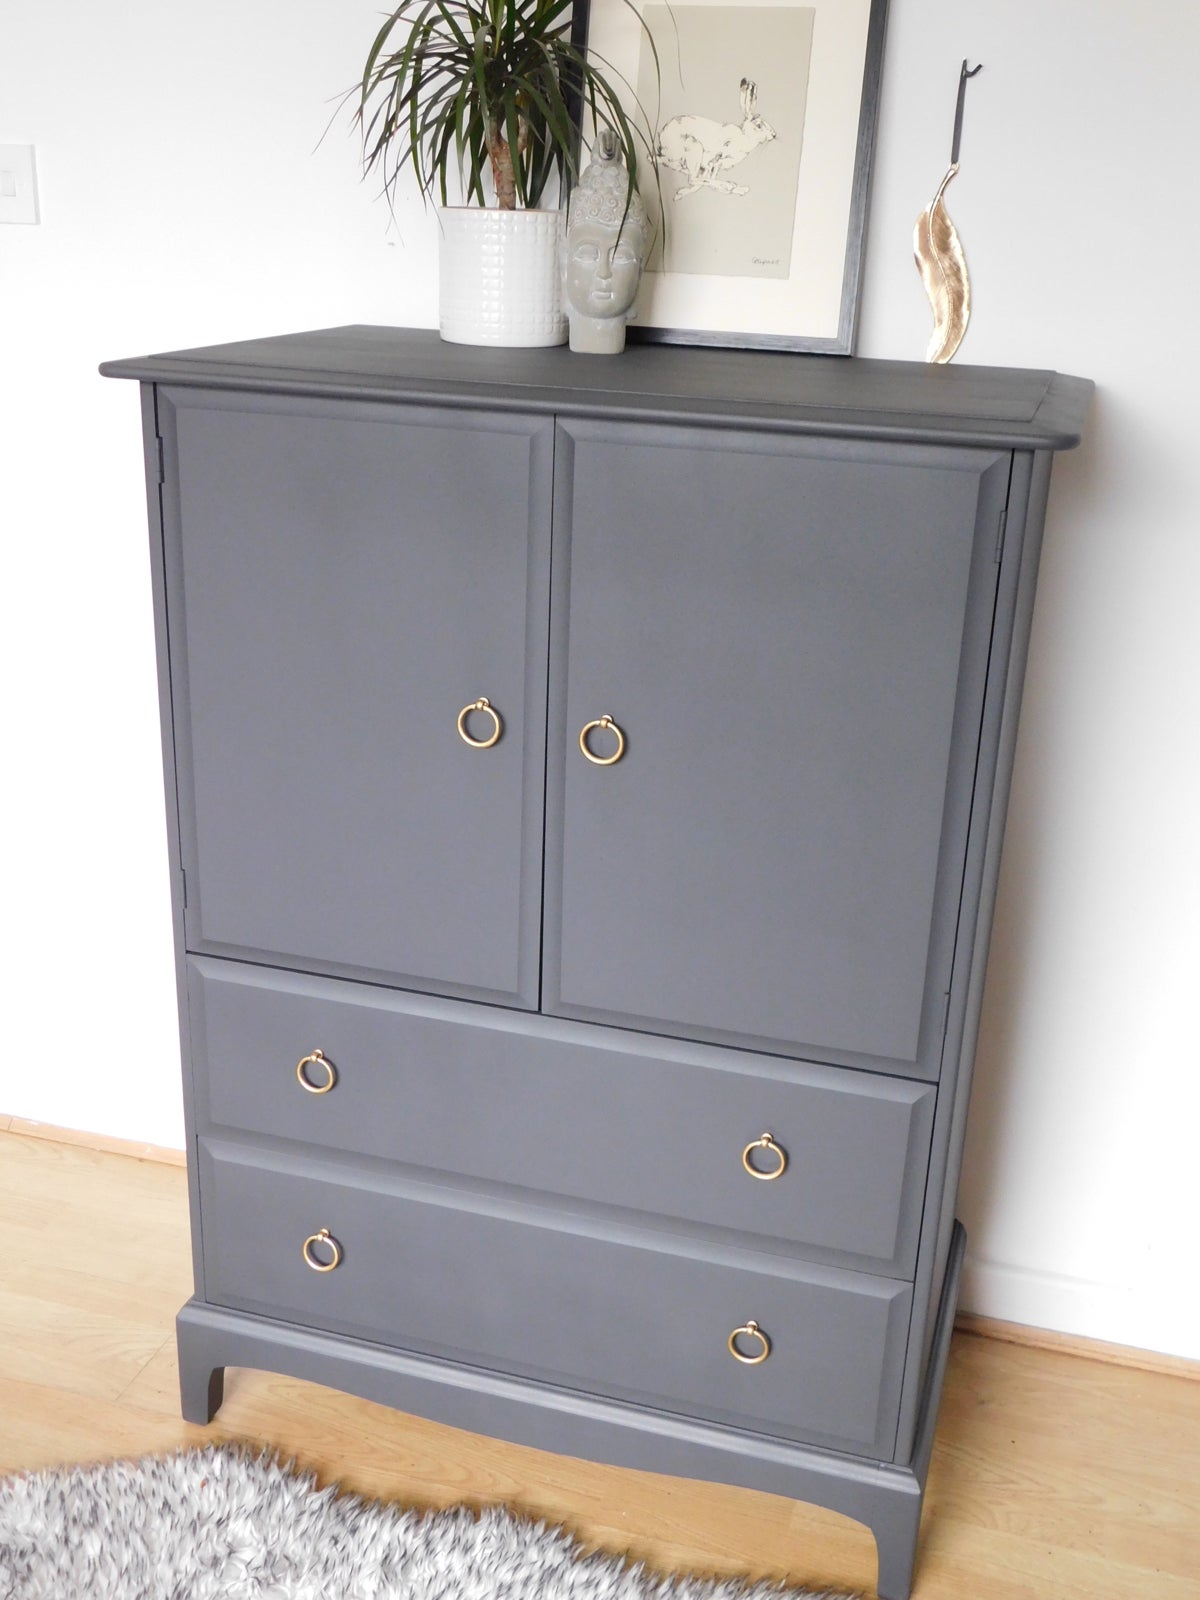 Image of Stag mahogany linen cupboard in dark grey